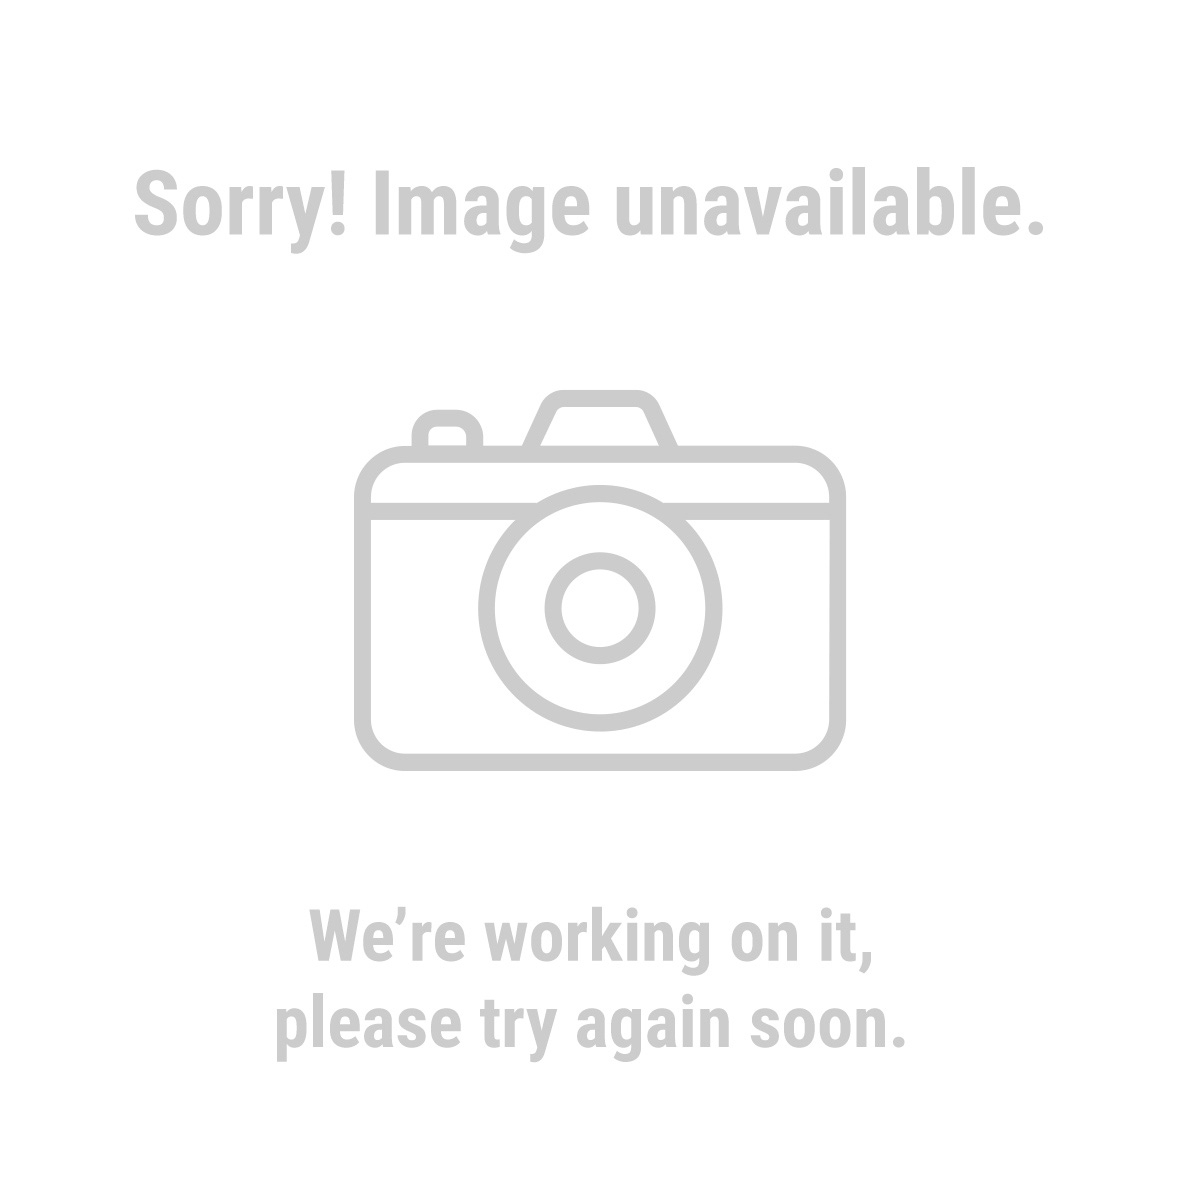 "Haul-Master 67465 10"" x 3-1/2"" Pneumatic Tire"